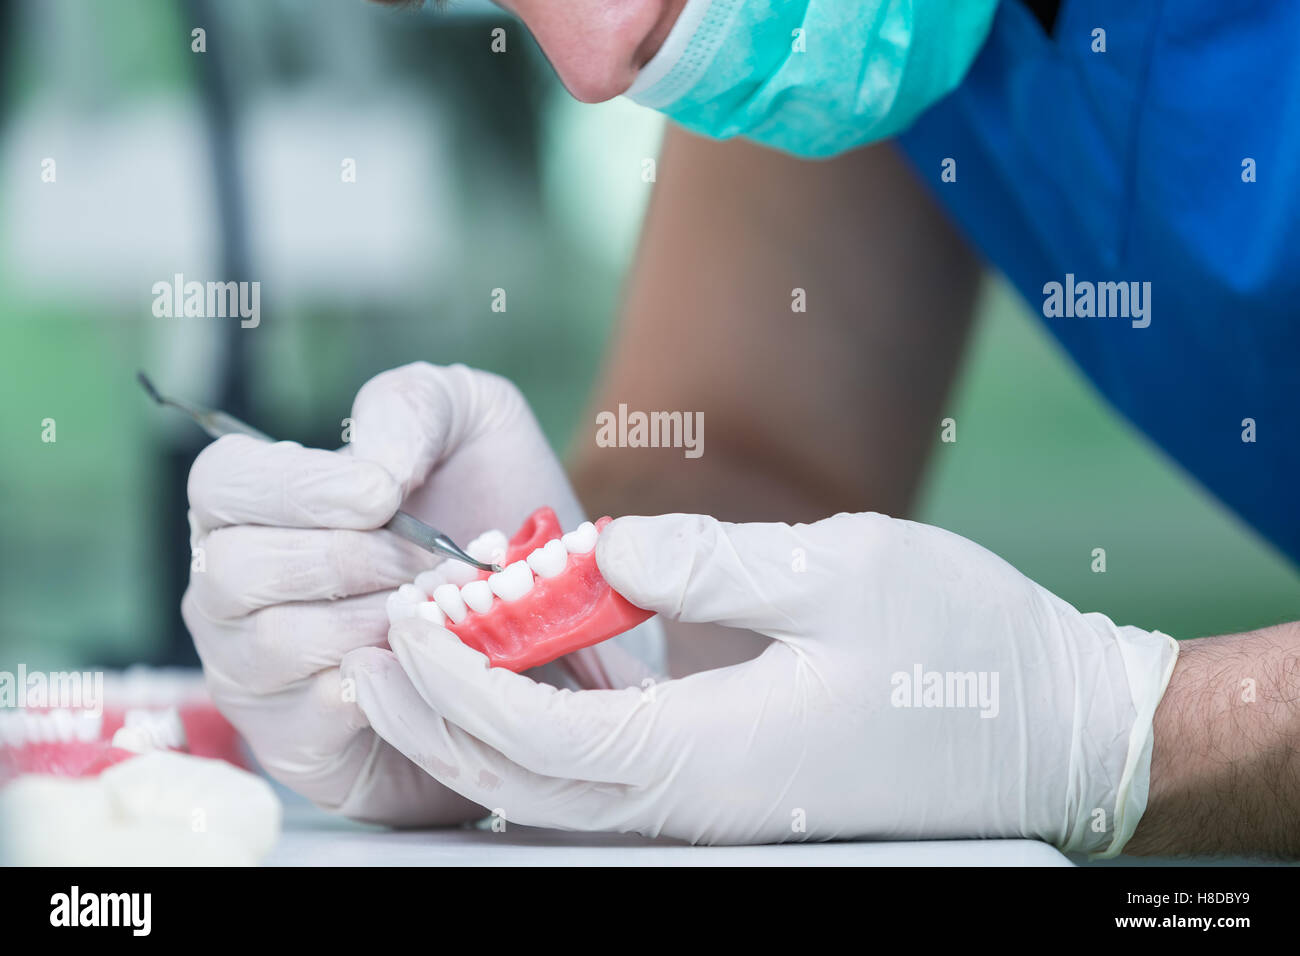 Prosthetics hands while working on the denture. - Stock Image